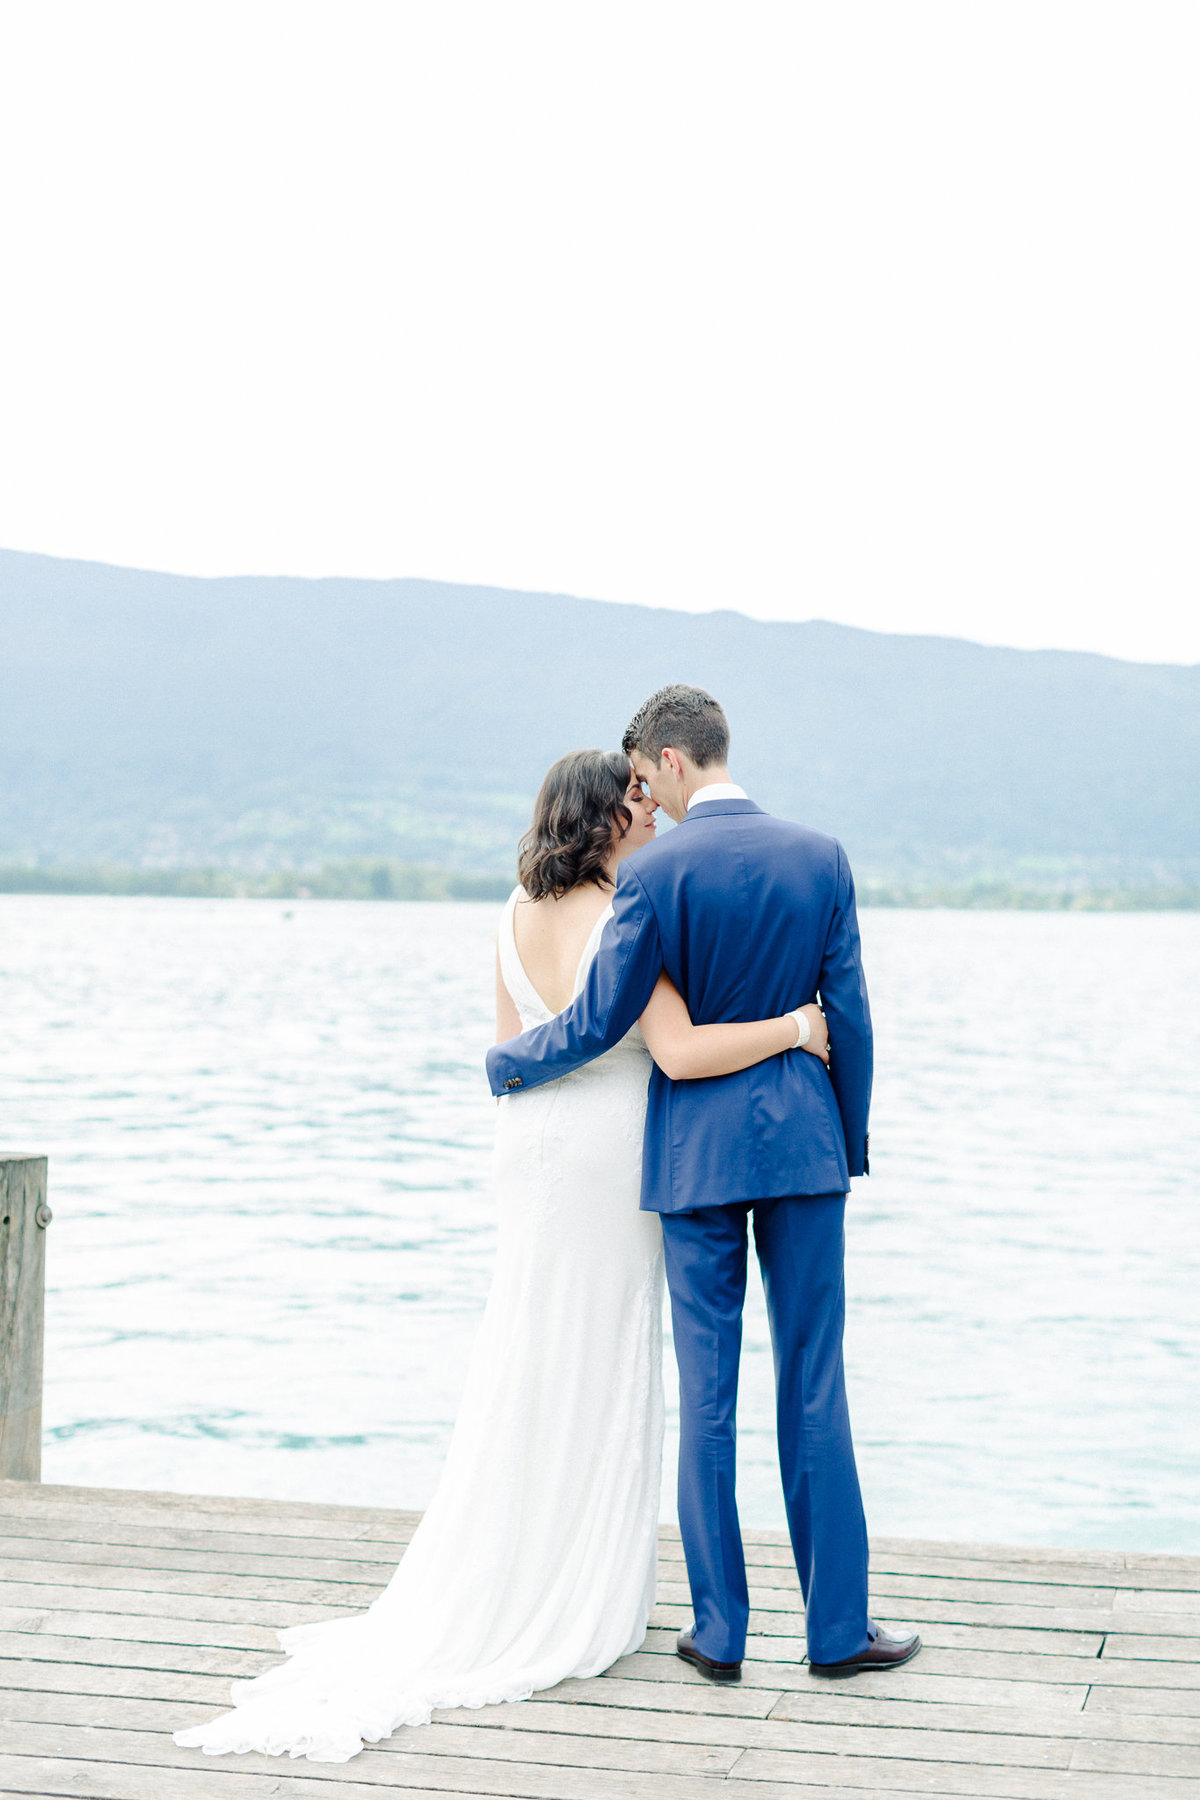 photographe-mariage-talloires-france-lisa-renault-photographie-wedding-destination-photographer-76